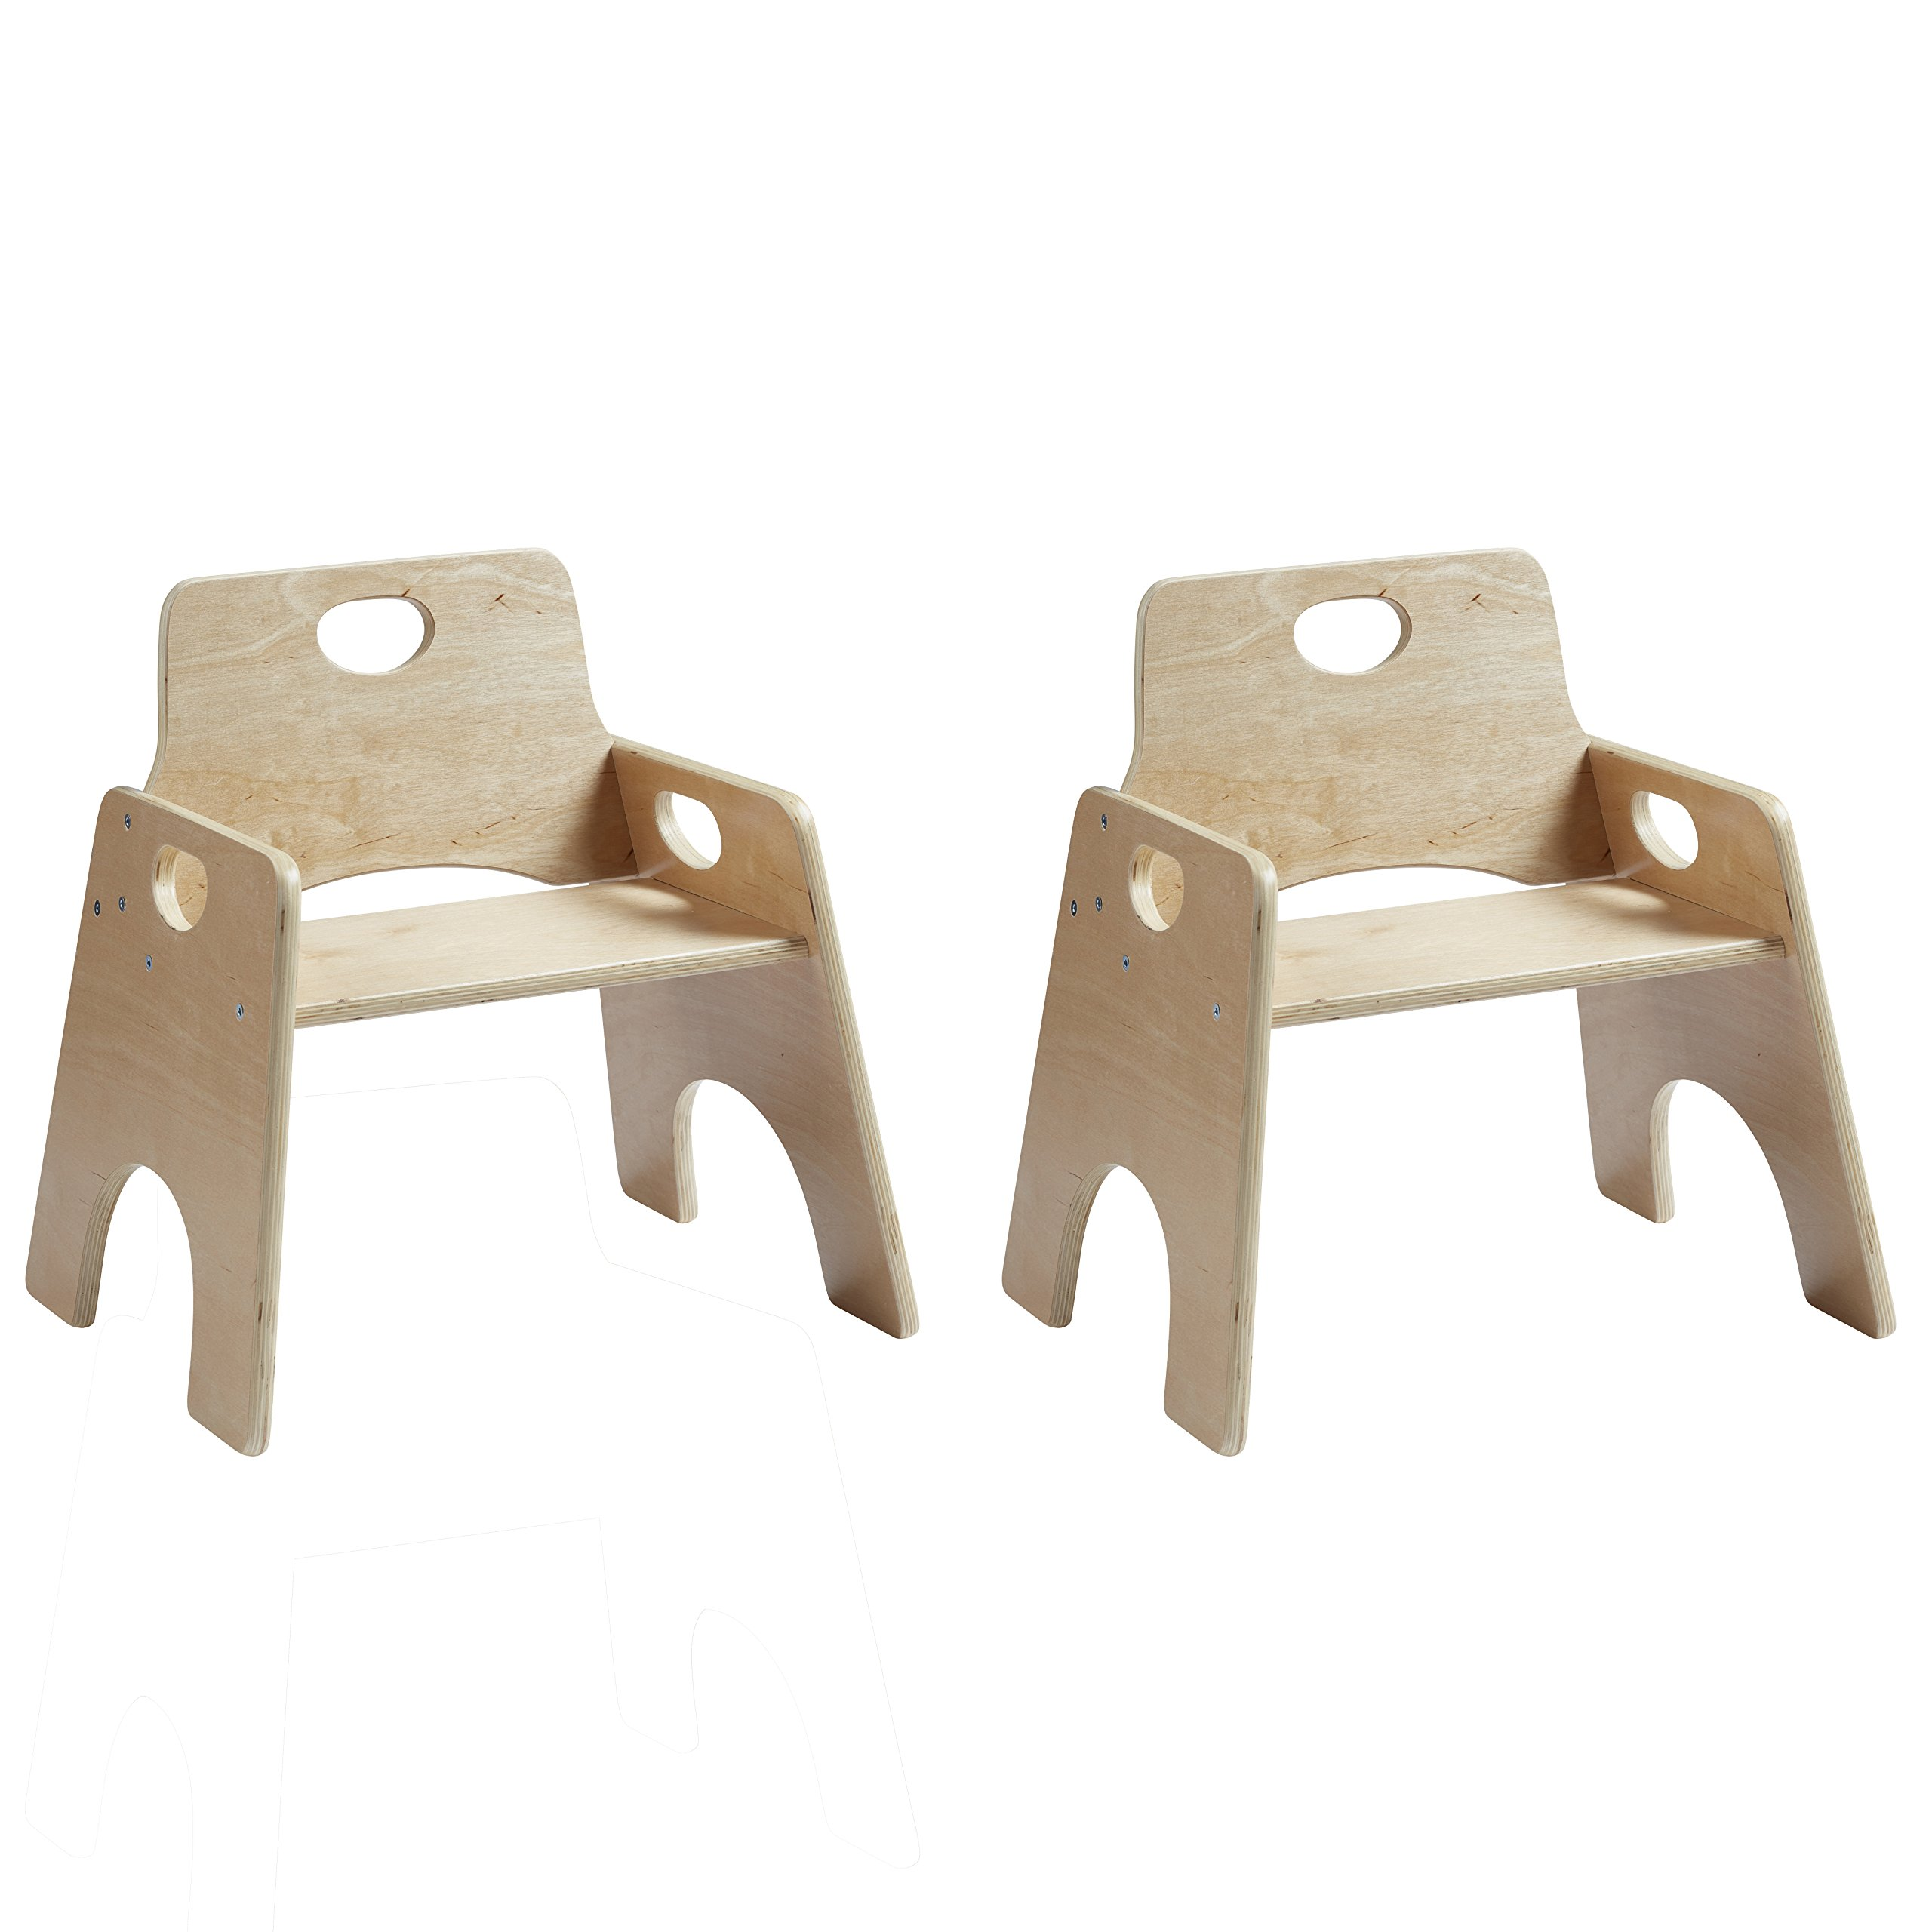 ECR4Kids 8'' Stackable Wooden Chair for Toddlers - Sturdy Hardwood Seat for Daycare/Preschool/Home Furniture -Natural Finish (2-Pack) by ECR4Kids